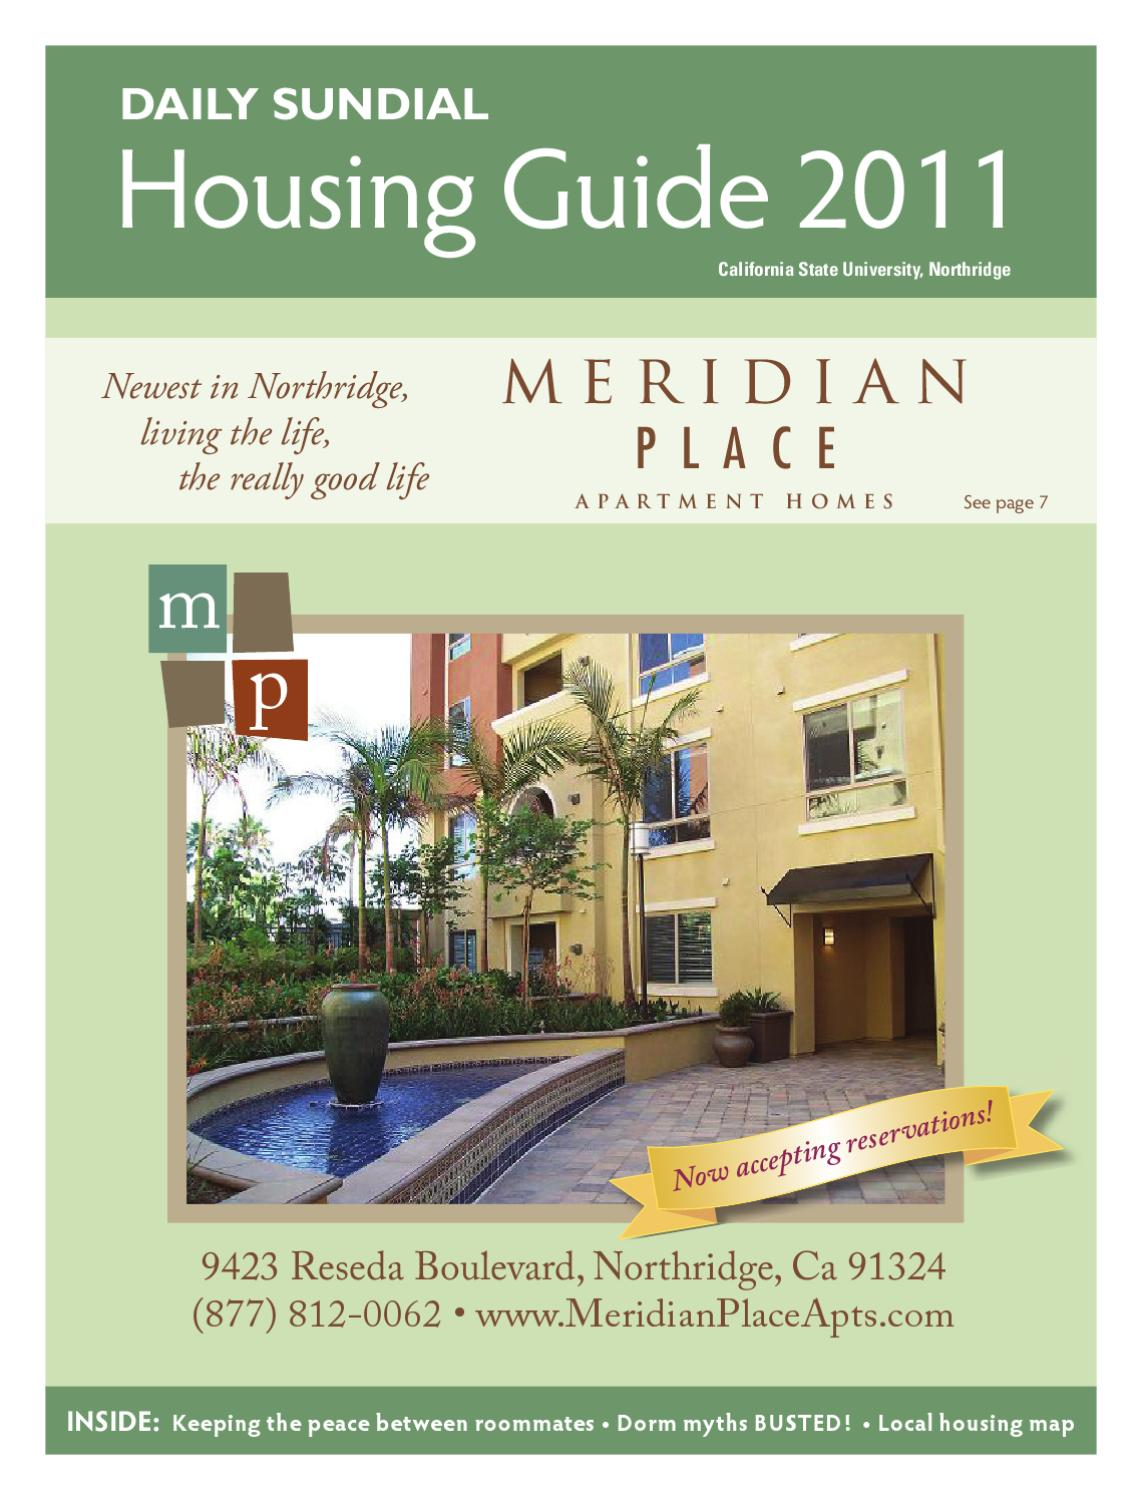 CSUN Housing Guide 2011 by The Sundial - issuu